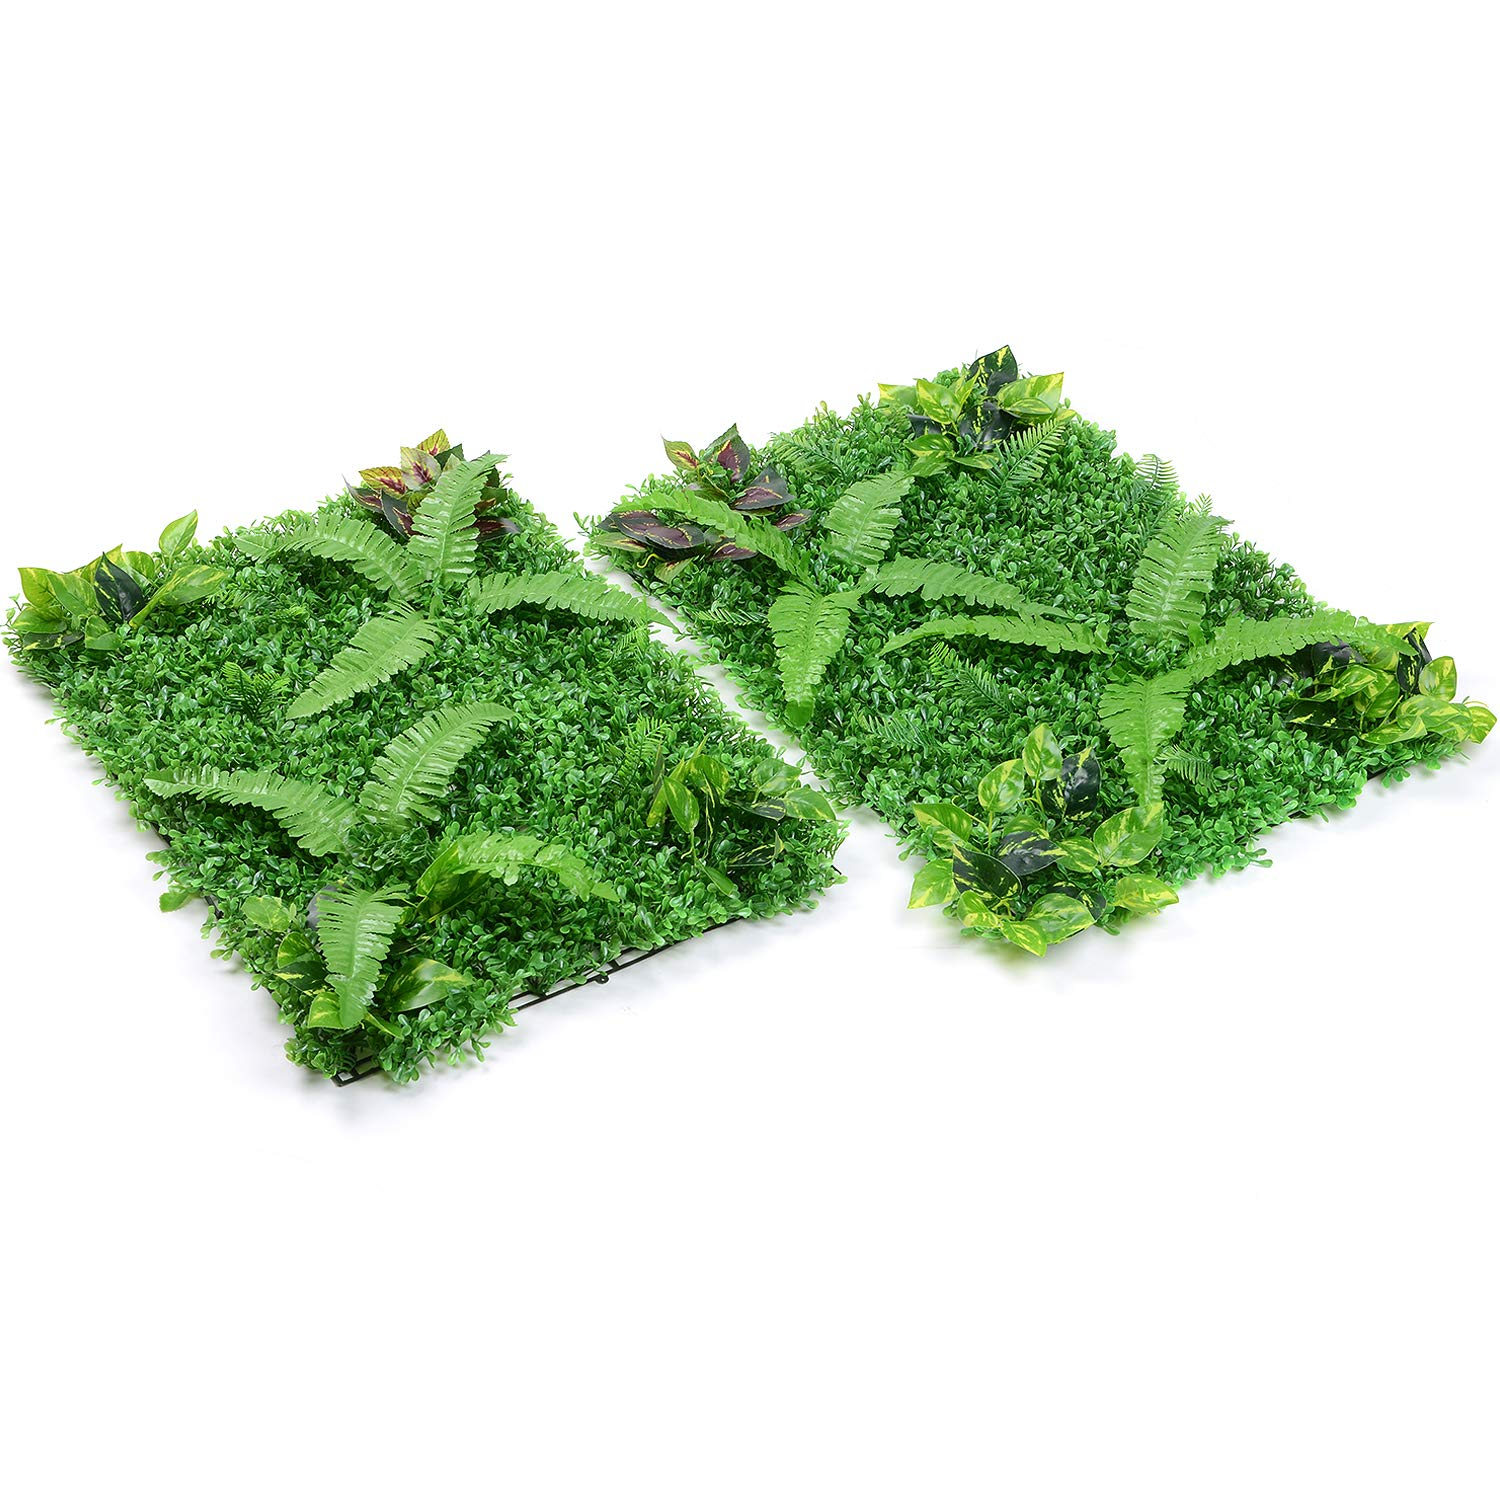 Lvydec 2 Pack Artificial Boxwood Hedge Panels, UV Protected Faux Greenery Fence Panels Mats for Privacy Fence Patio, Greenery Walls Indoor Outdoor Decor, 24'' L x 16'' W Panels, Hawaii Style by Lvydec